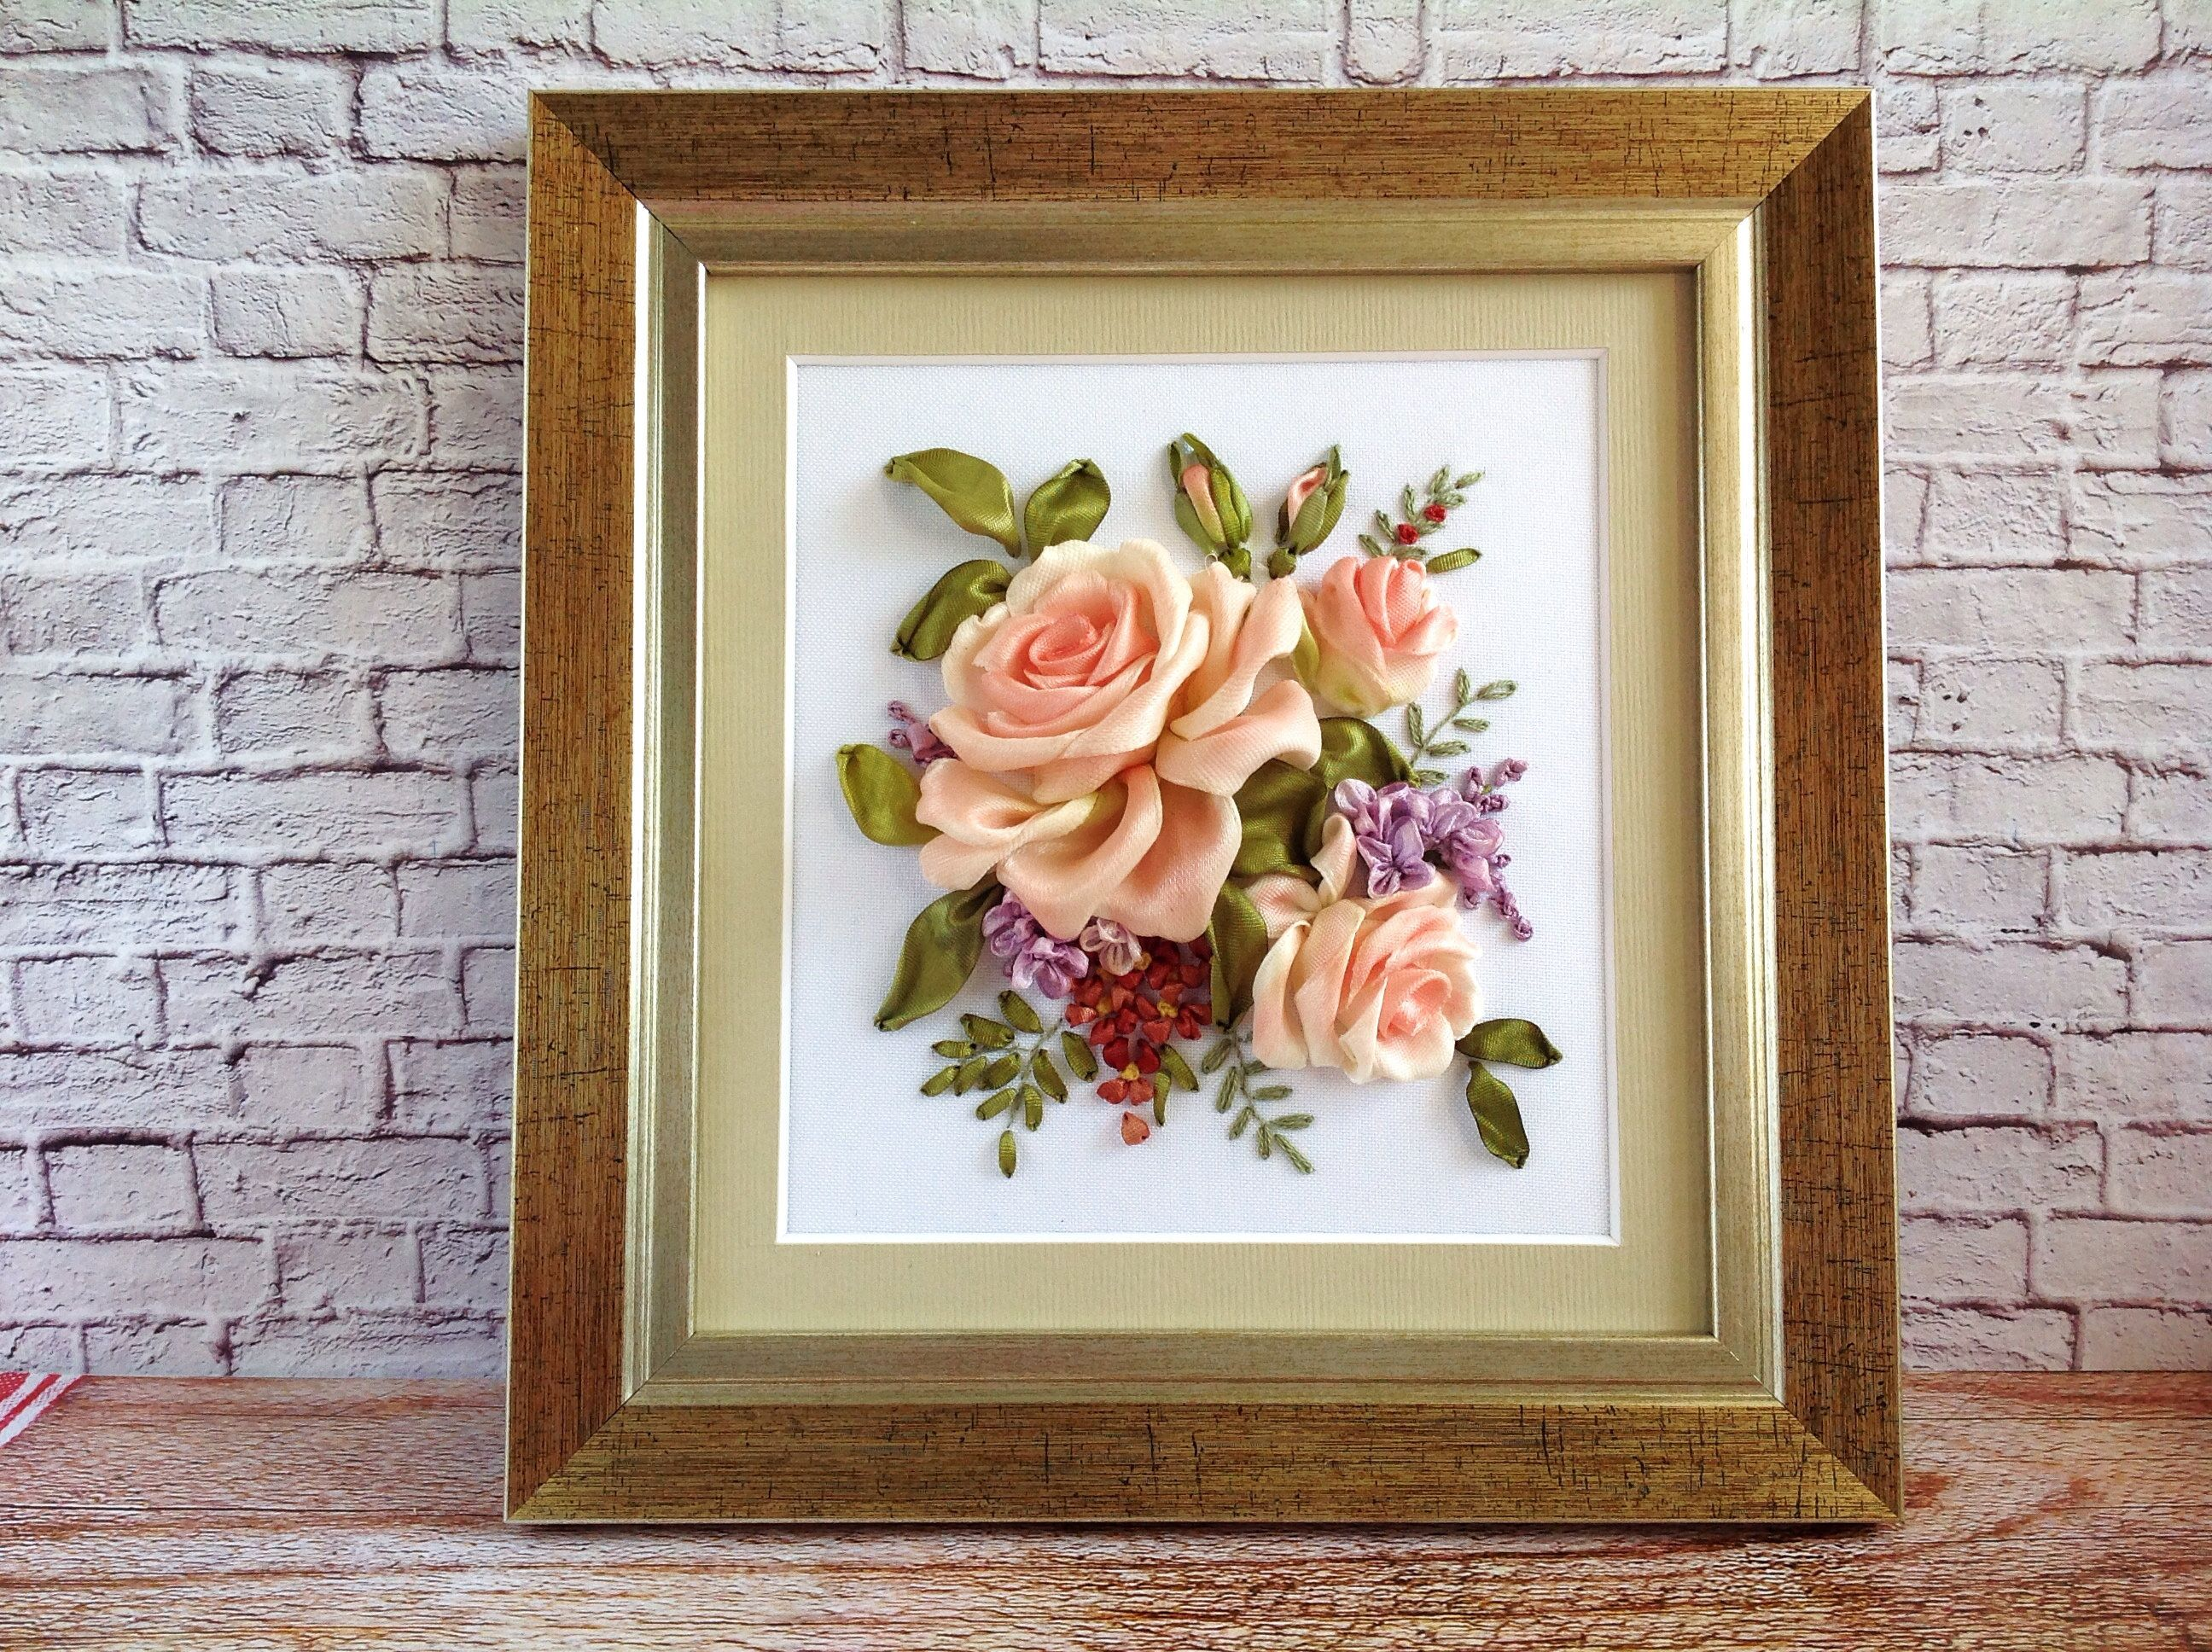 Pale Pink Roses 3d Framed Art Silk Ribbons Embroidered 8 Inch Etsy Small Framed Art Floral Wall Decor Floral Wall